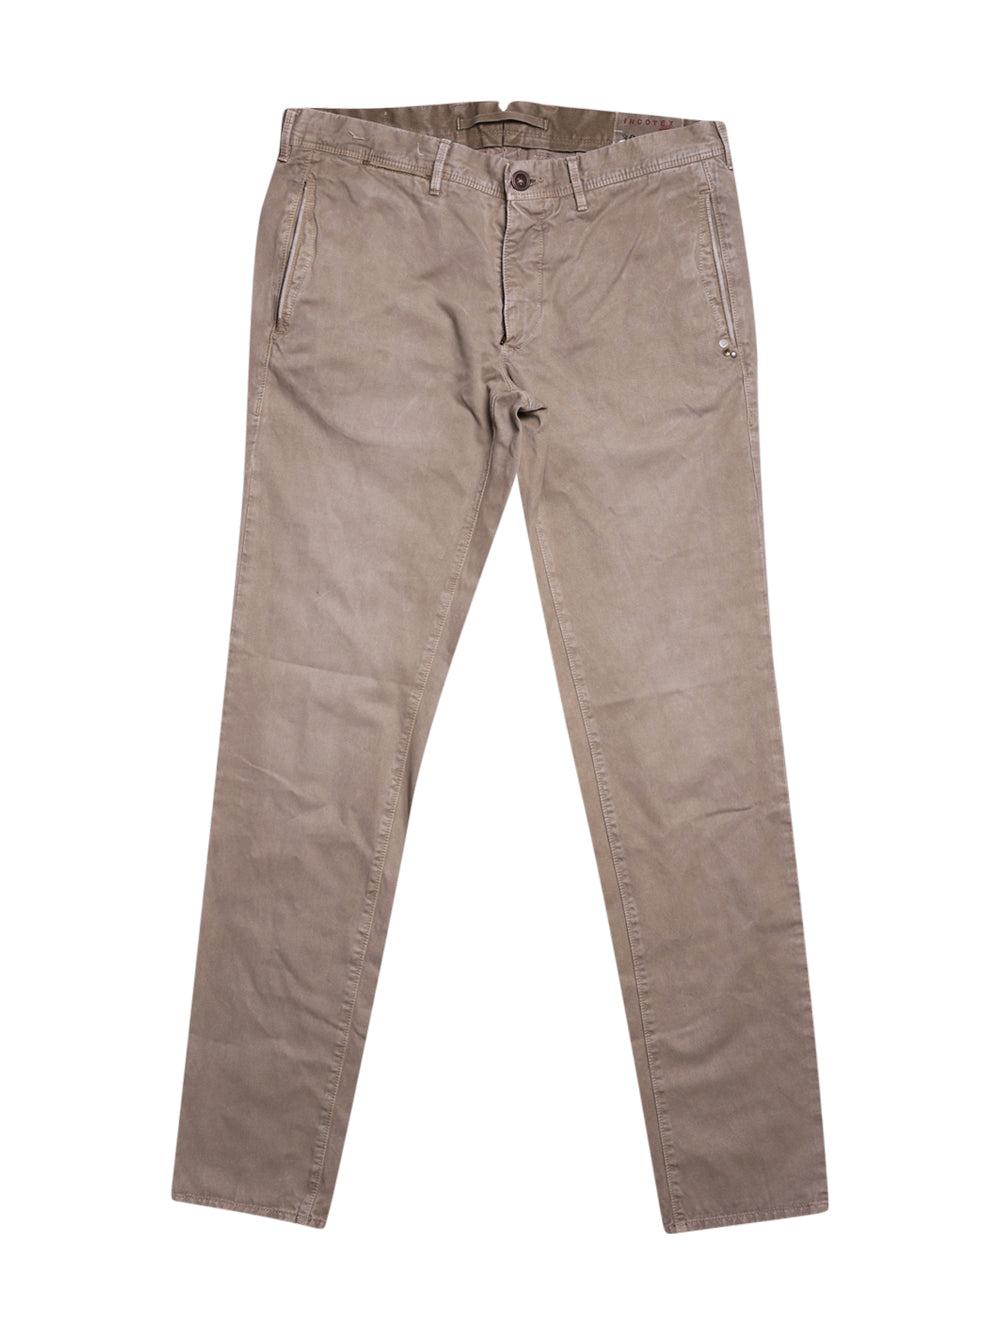 Front photo of Preloved Incotex Beige Man's trousers - size 40/L